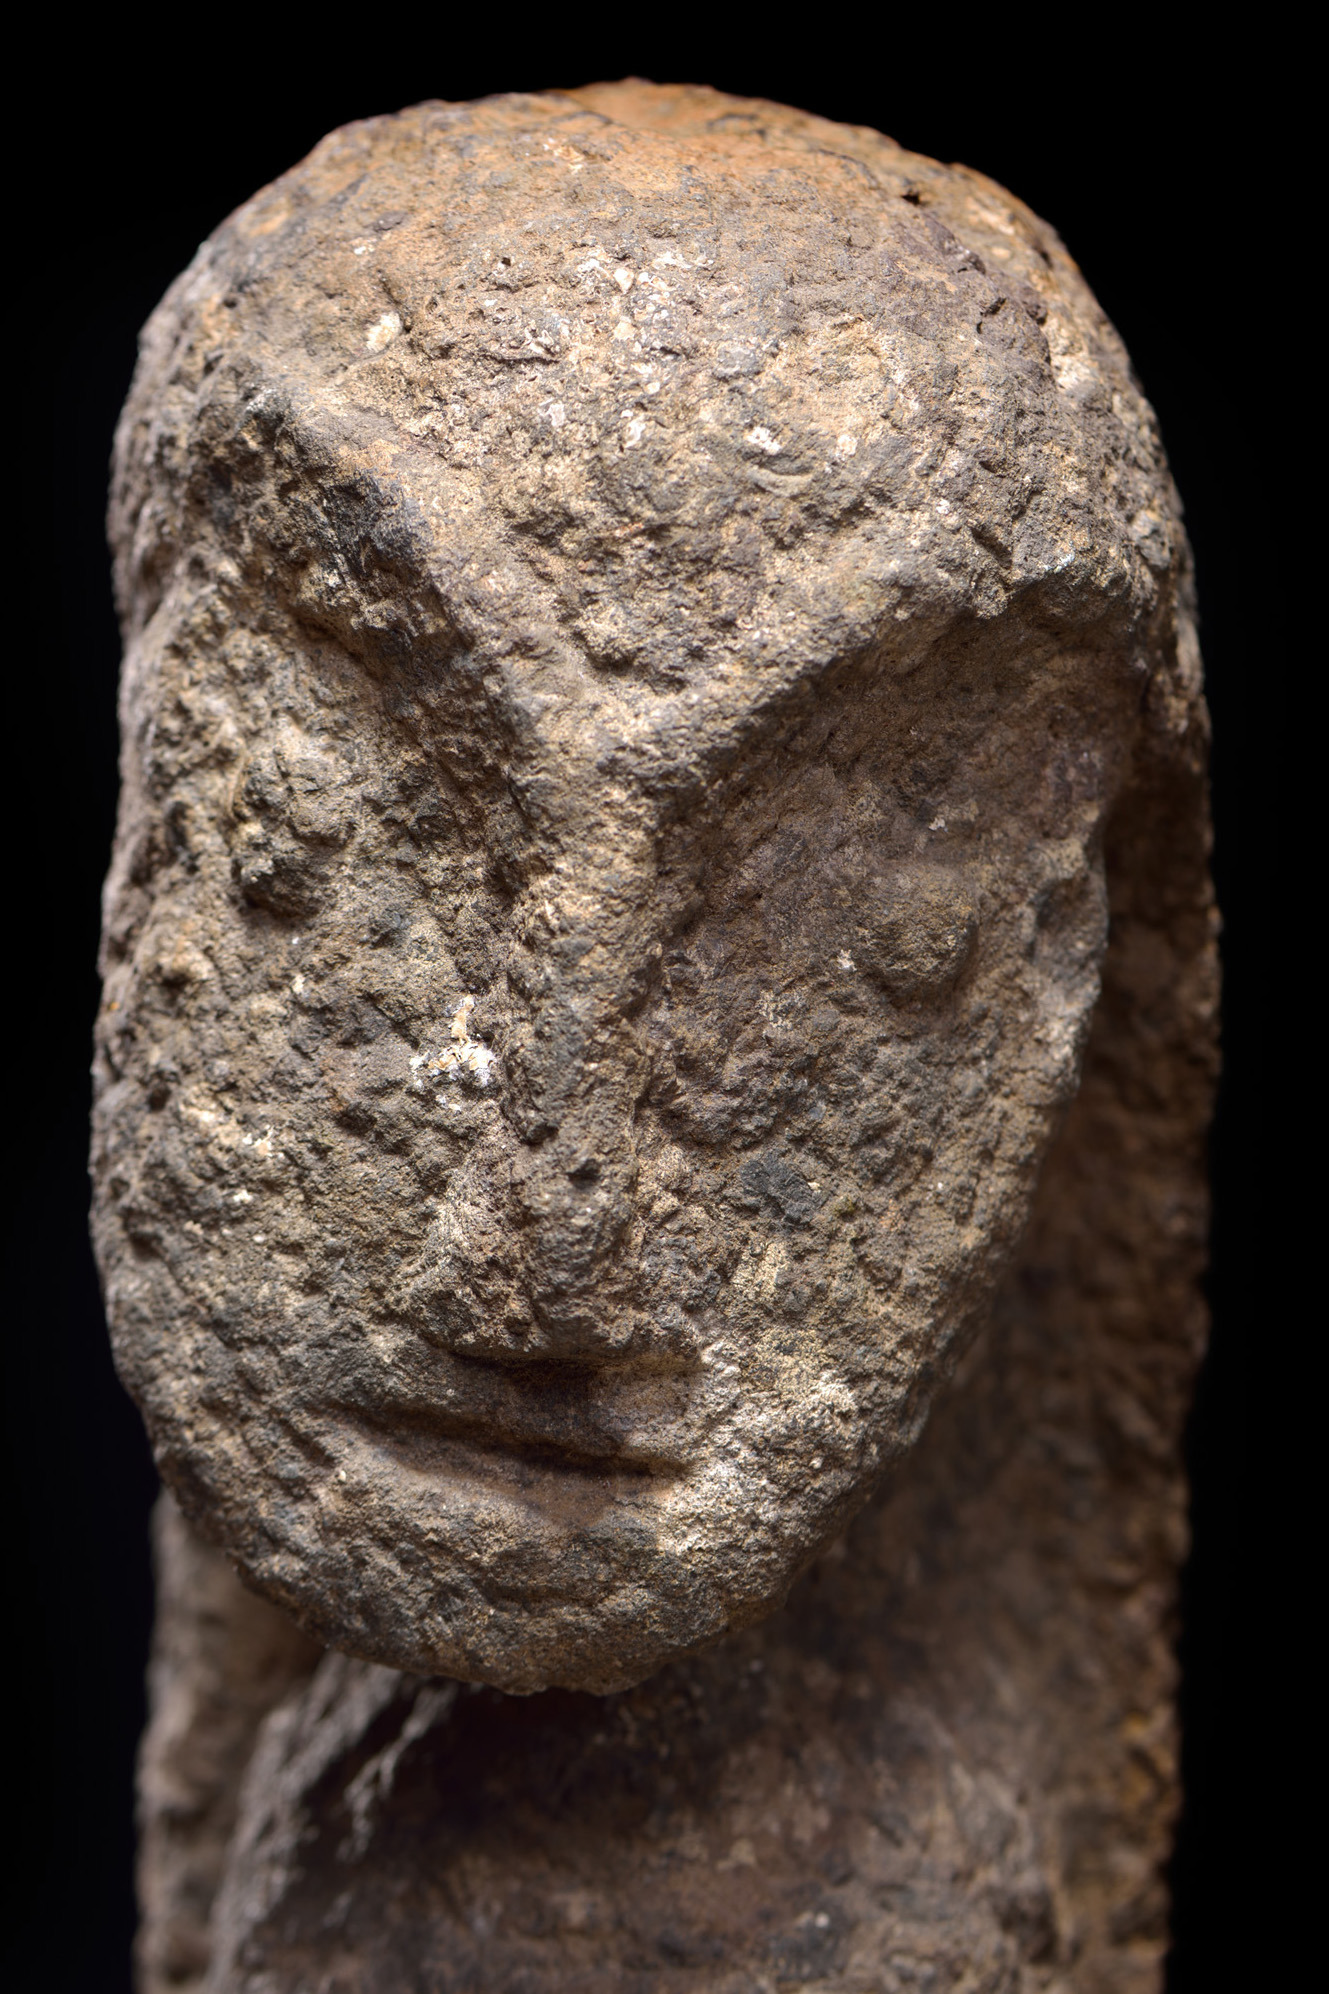 Anthropomorphic stone sculpture, 19th or early 20th century